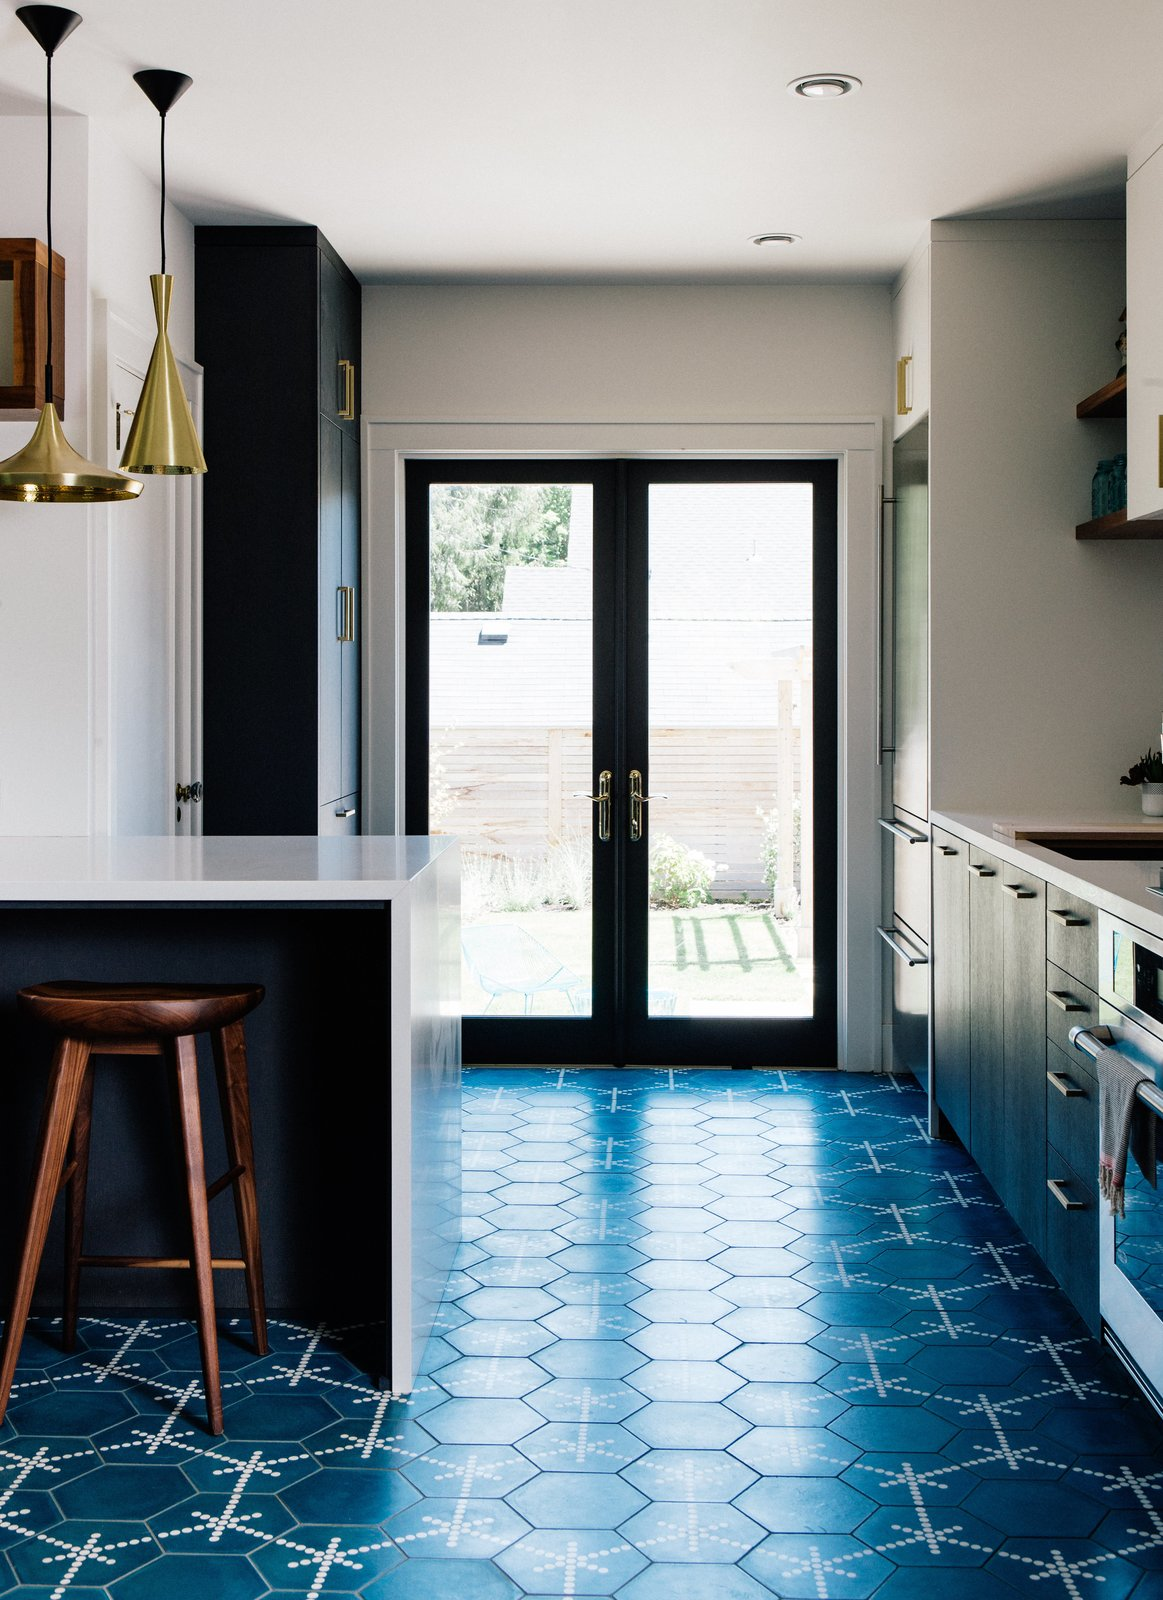 Vintage lover Sarah Benson worked with local firm Bright Designlab to gently update her 1925 home in Portland, Oregon. In the kitchen, Moroccan cement tiles featuring a blue Hex Dot pattern by Popham Designs cover the floor. Tagged: Kitchen, Engineered Quartz Counter, Cement Tile Floor, and Pendant Lighting.  Photo 2 of 10 in A 1925 Portland Home Is a Rad Mashup of 20th-Century Styles